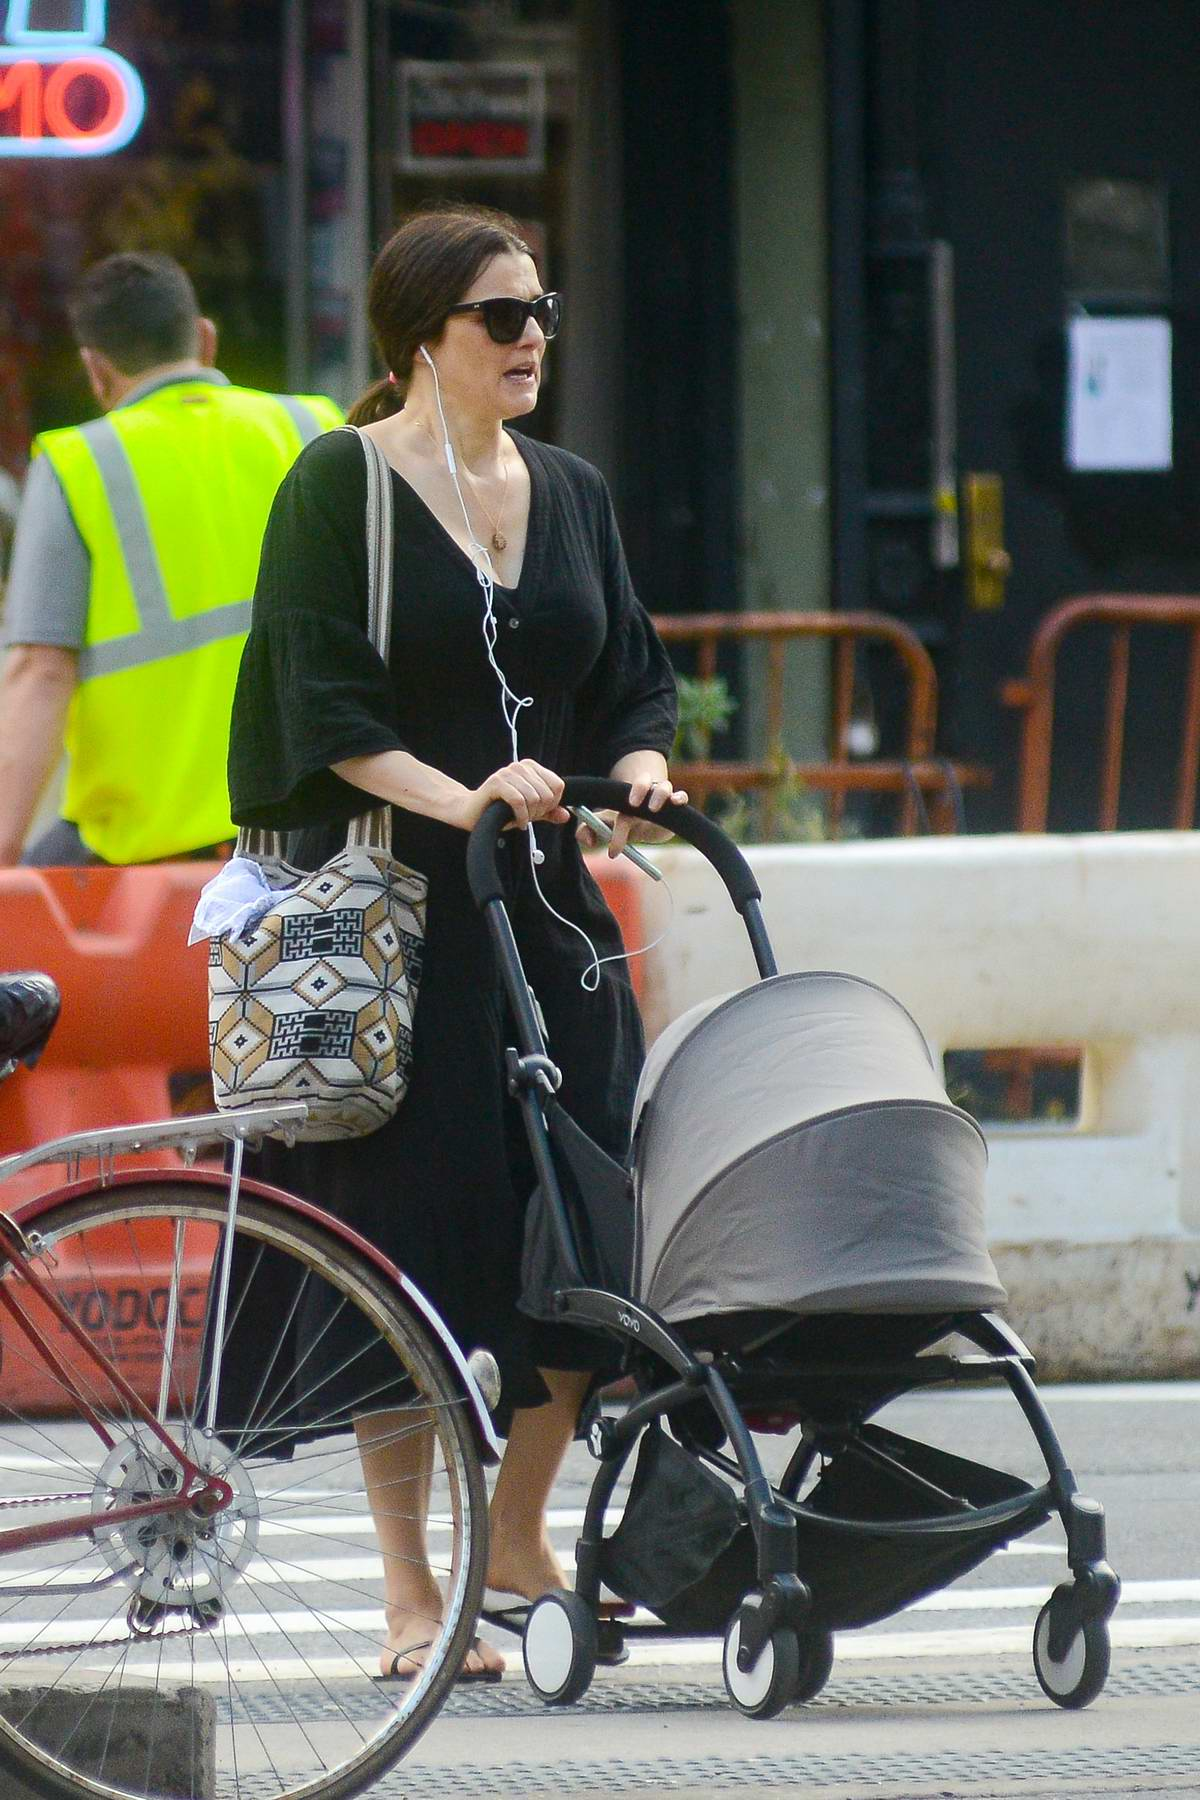 Rachel Weisz steps out in a black dress with her baby stroller in New York City